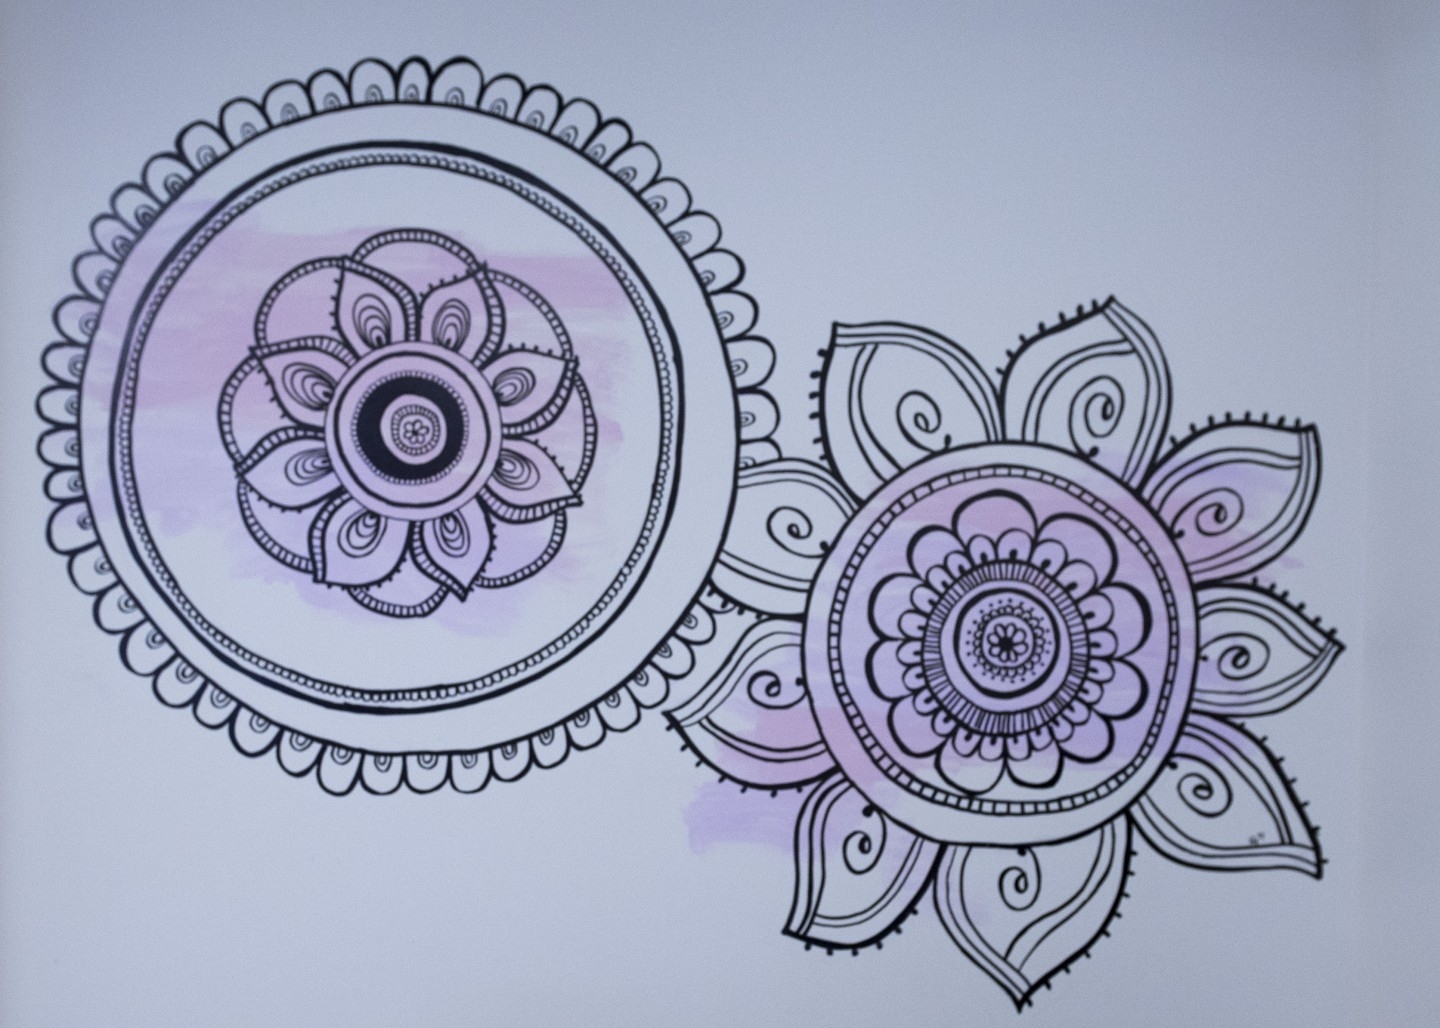 Diy Mandala Wall Art | With A Sharpie And No Stencils! With Mandala Wall Art (View 13 of 20)